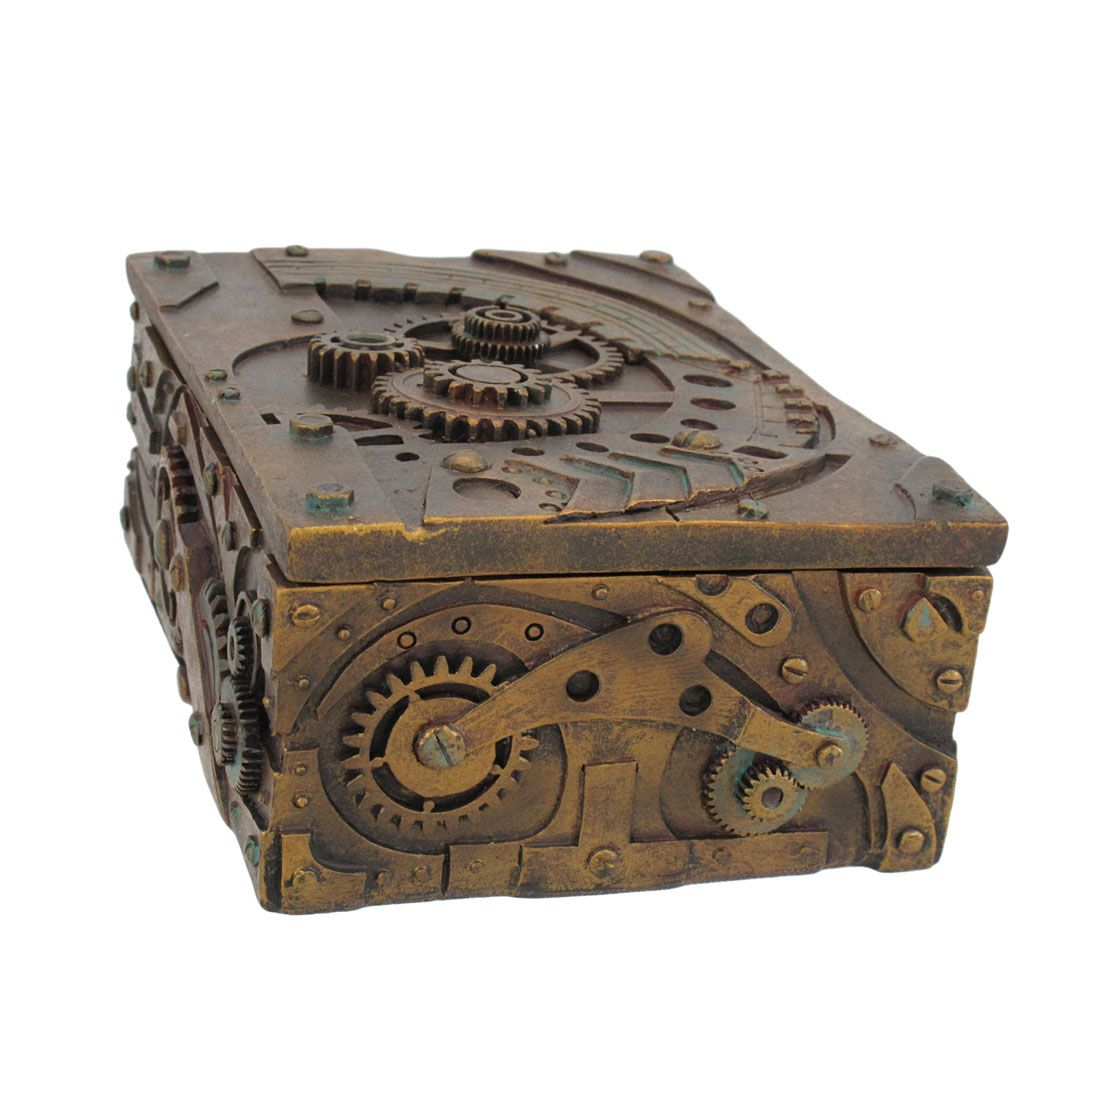 Ring In The Steampunk Decor To Pimp Up Your Home: Steampunk Trinket / Jewelry Box Steam Punk Stash